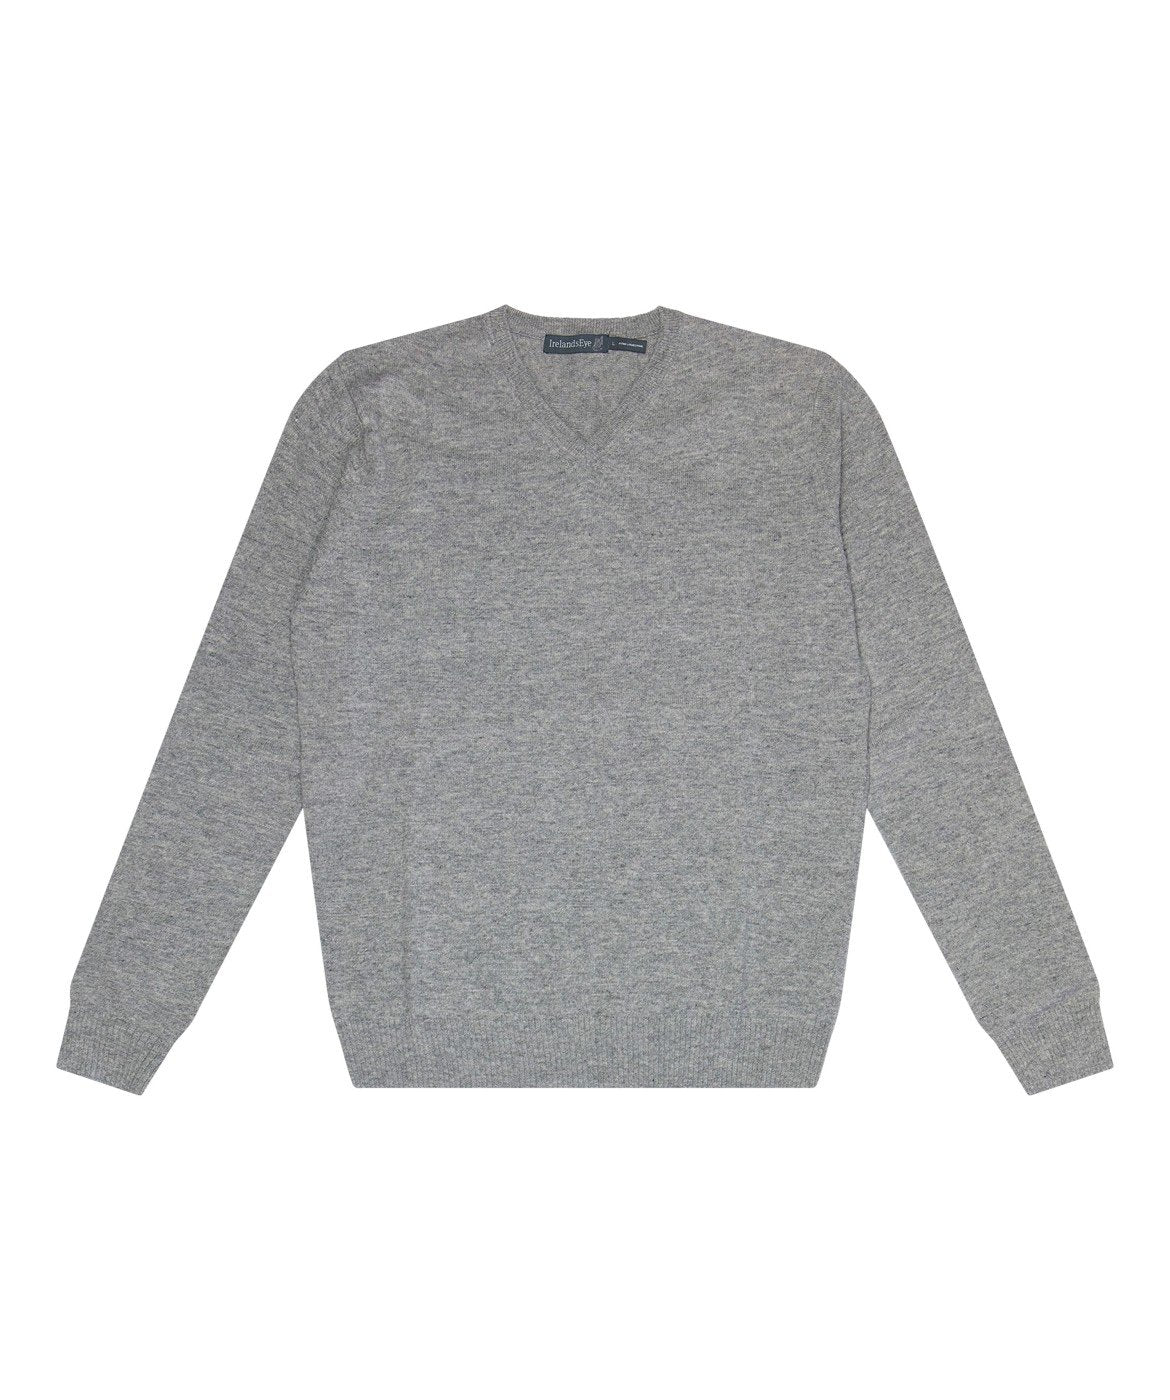 Easy Care V Neck Wool Sweater Grey-Smoke